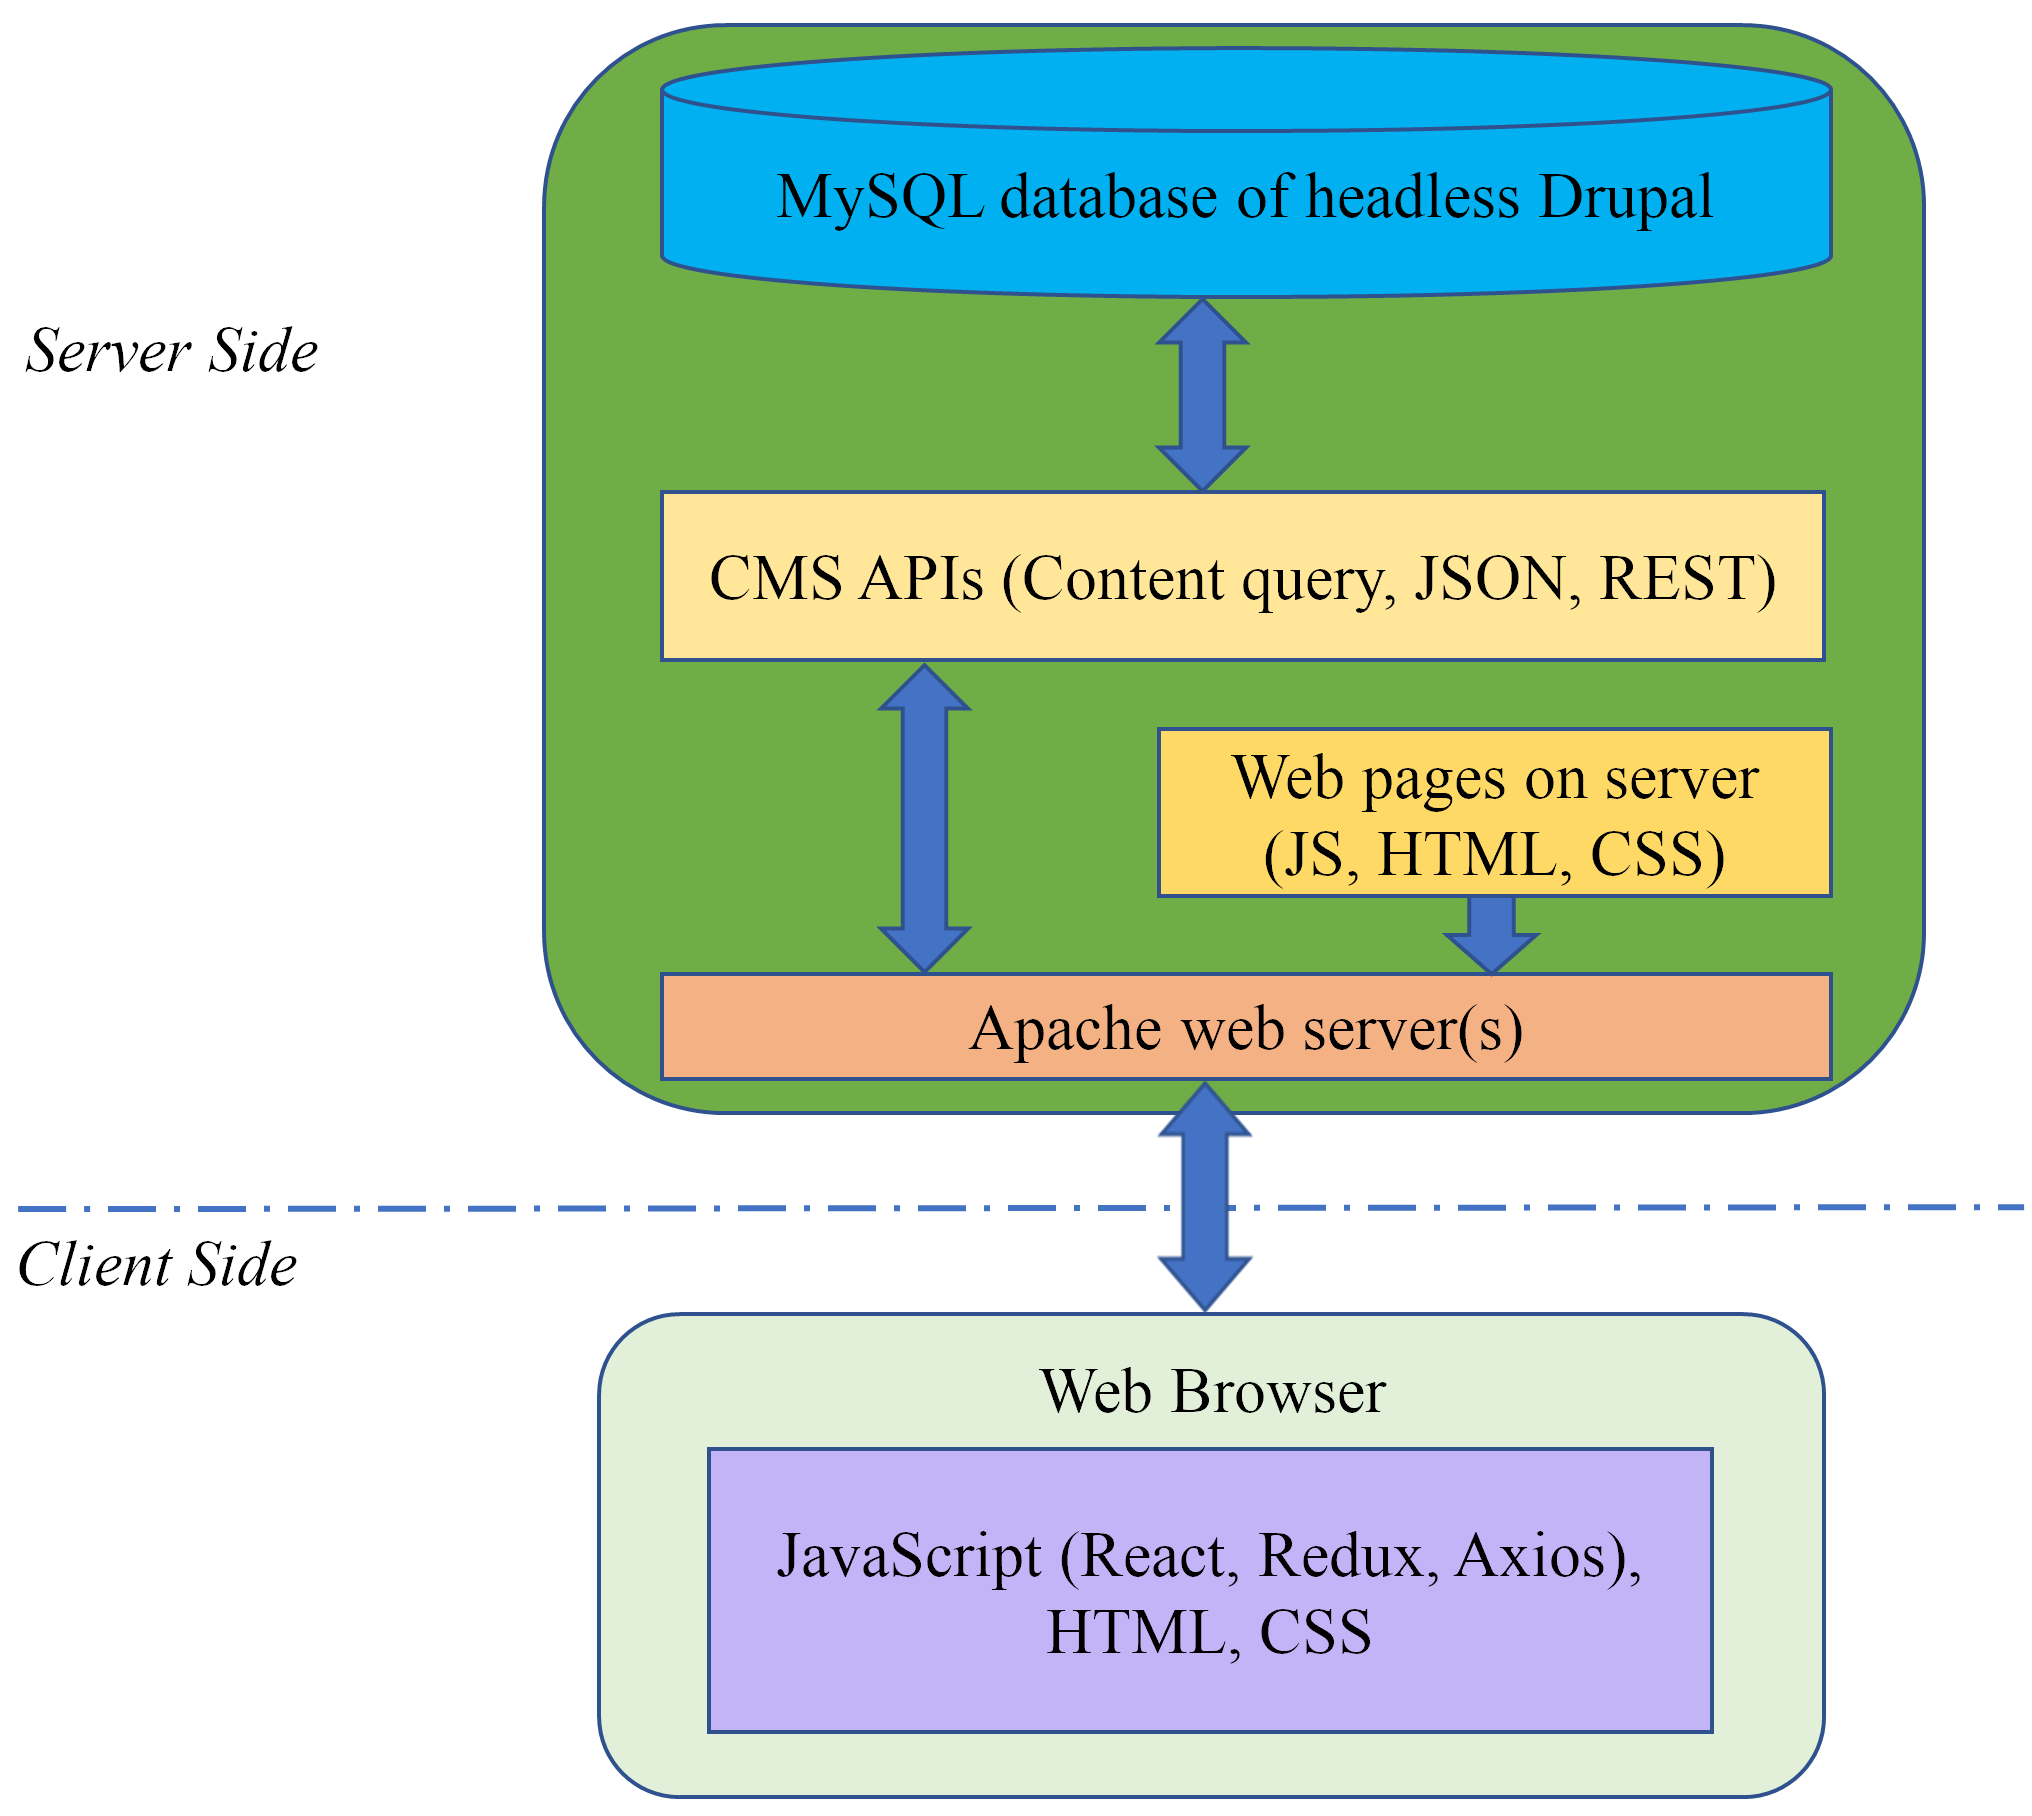 The software technology stack used on the server side and the client side in the development of the Timeline website.